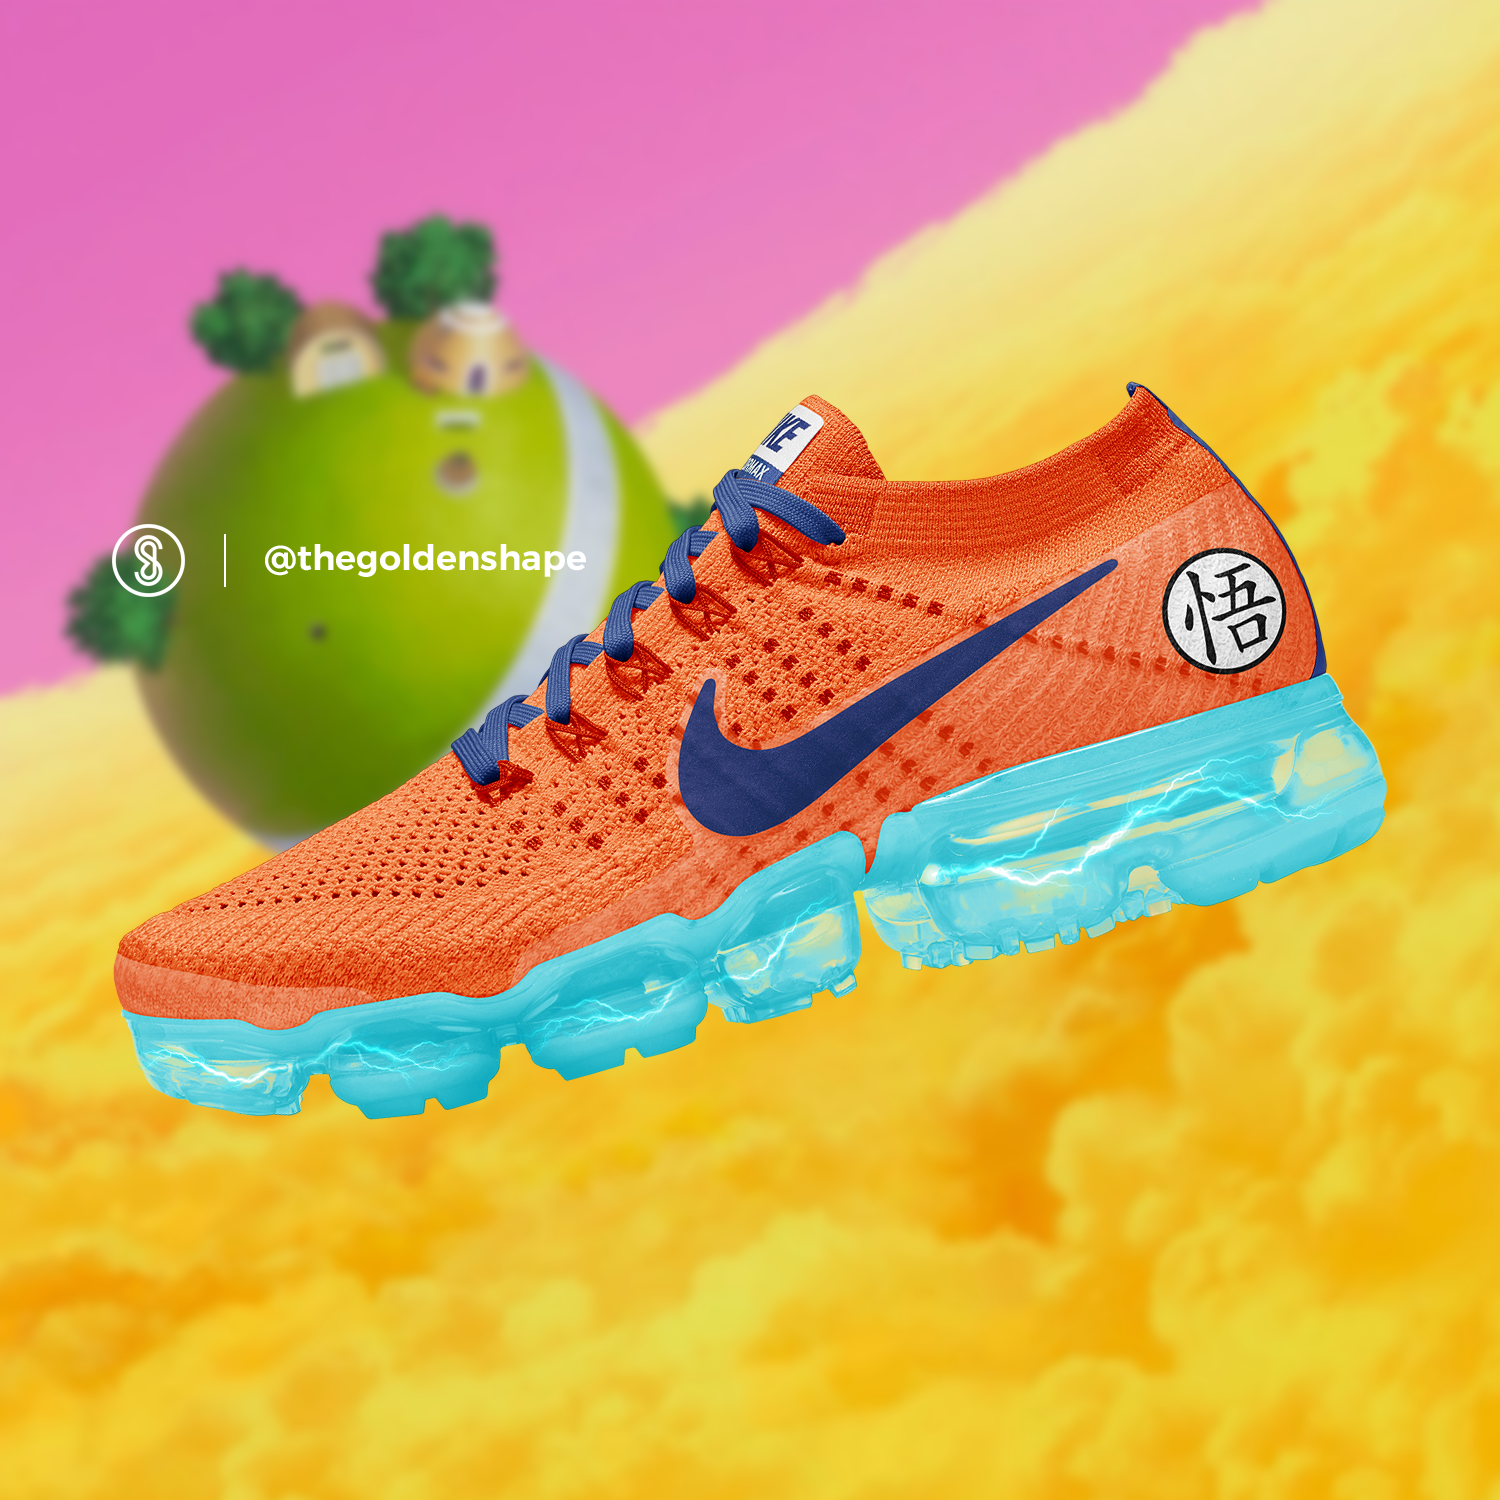 Ball Vapormax Son X Dragon Nike Saiyan Goku Super BlueOther kPZXOiu